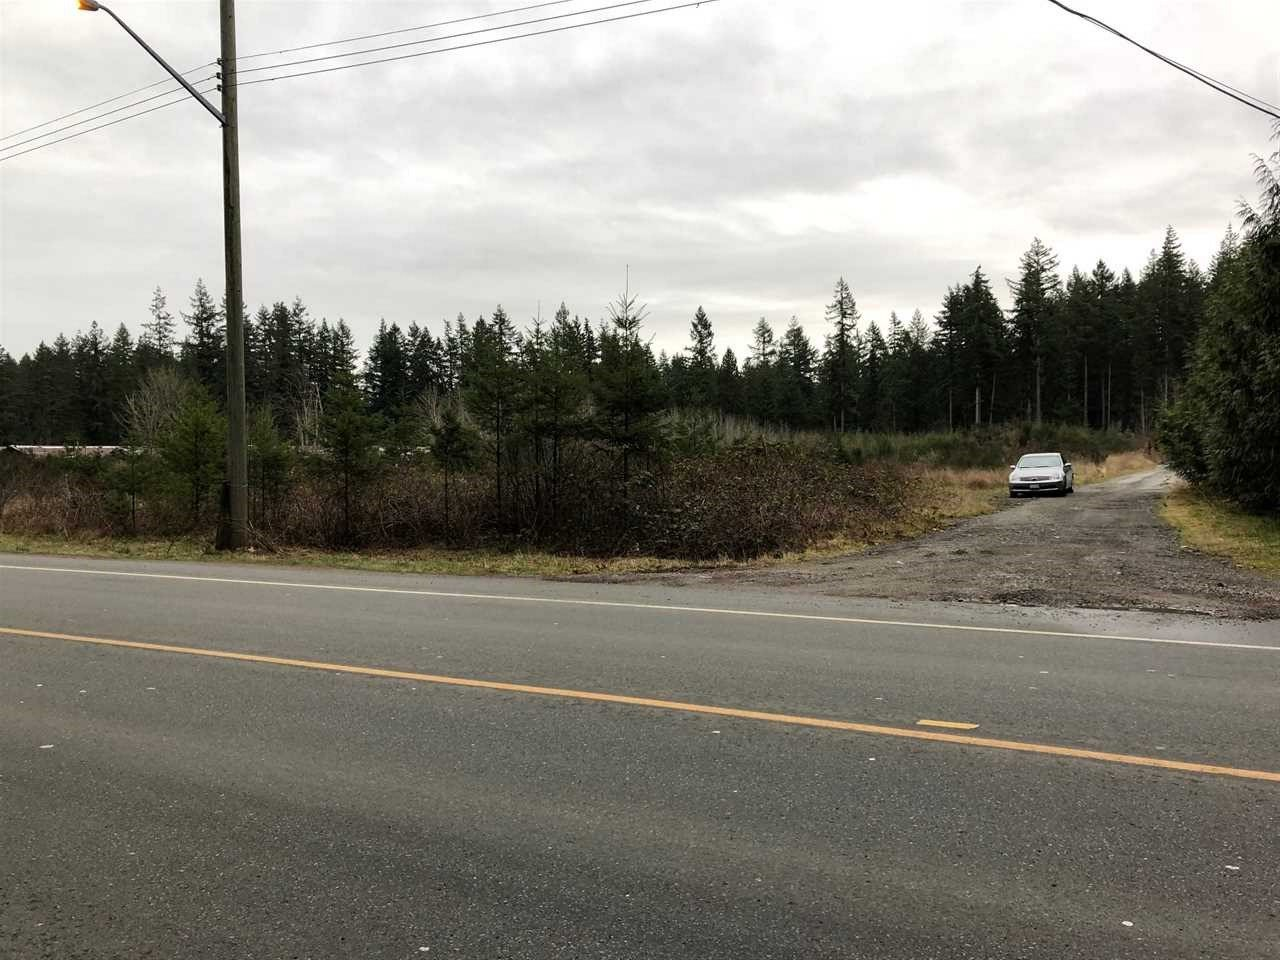 Main Photo: 2880 200 Street in Langley: Brookswood Langley Land for sale : MLS®# R2425498